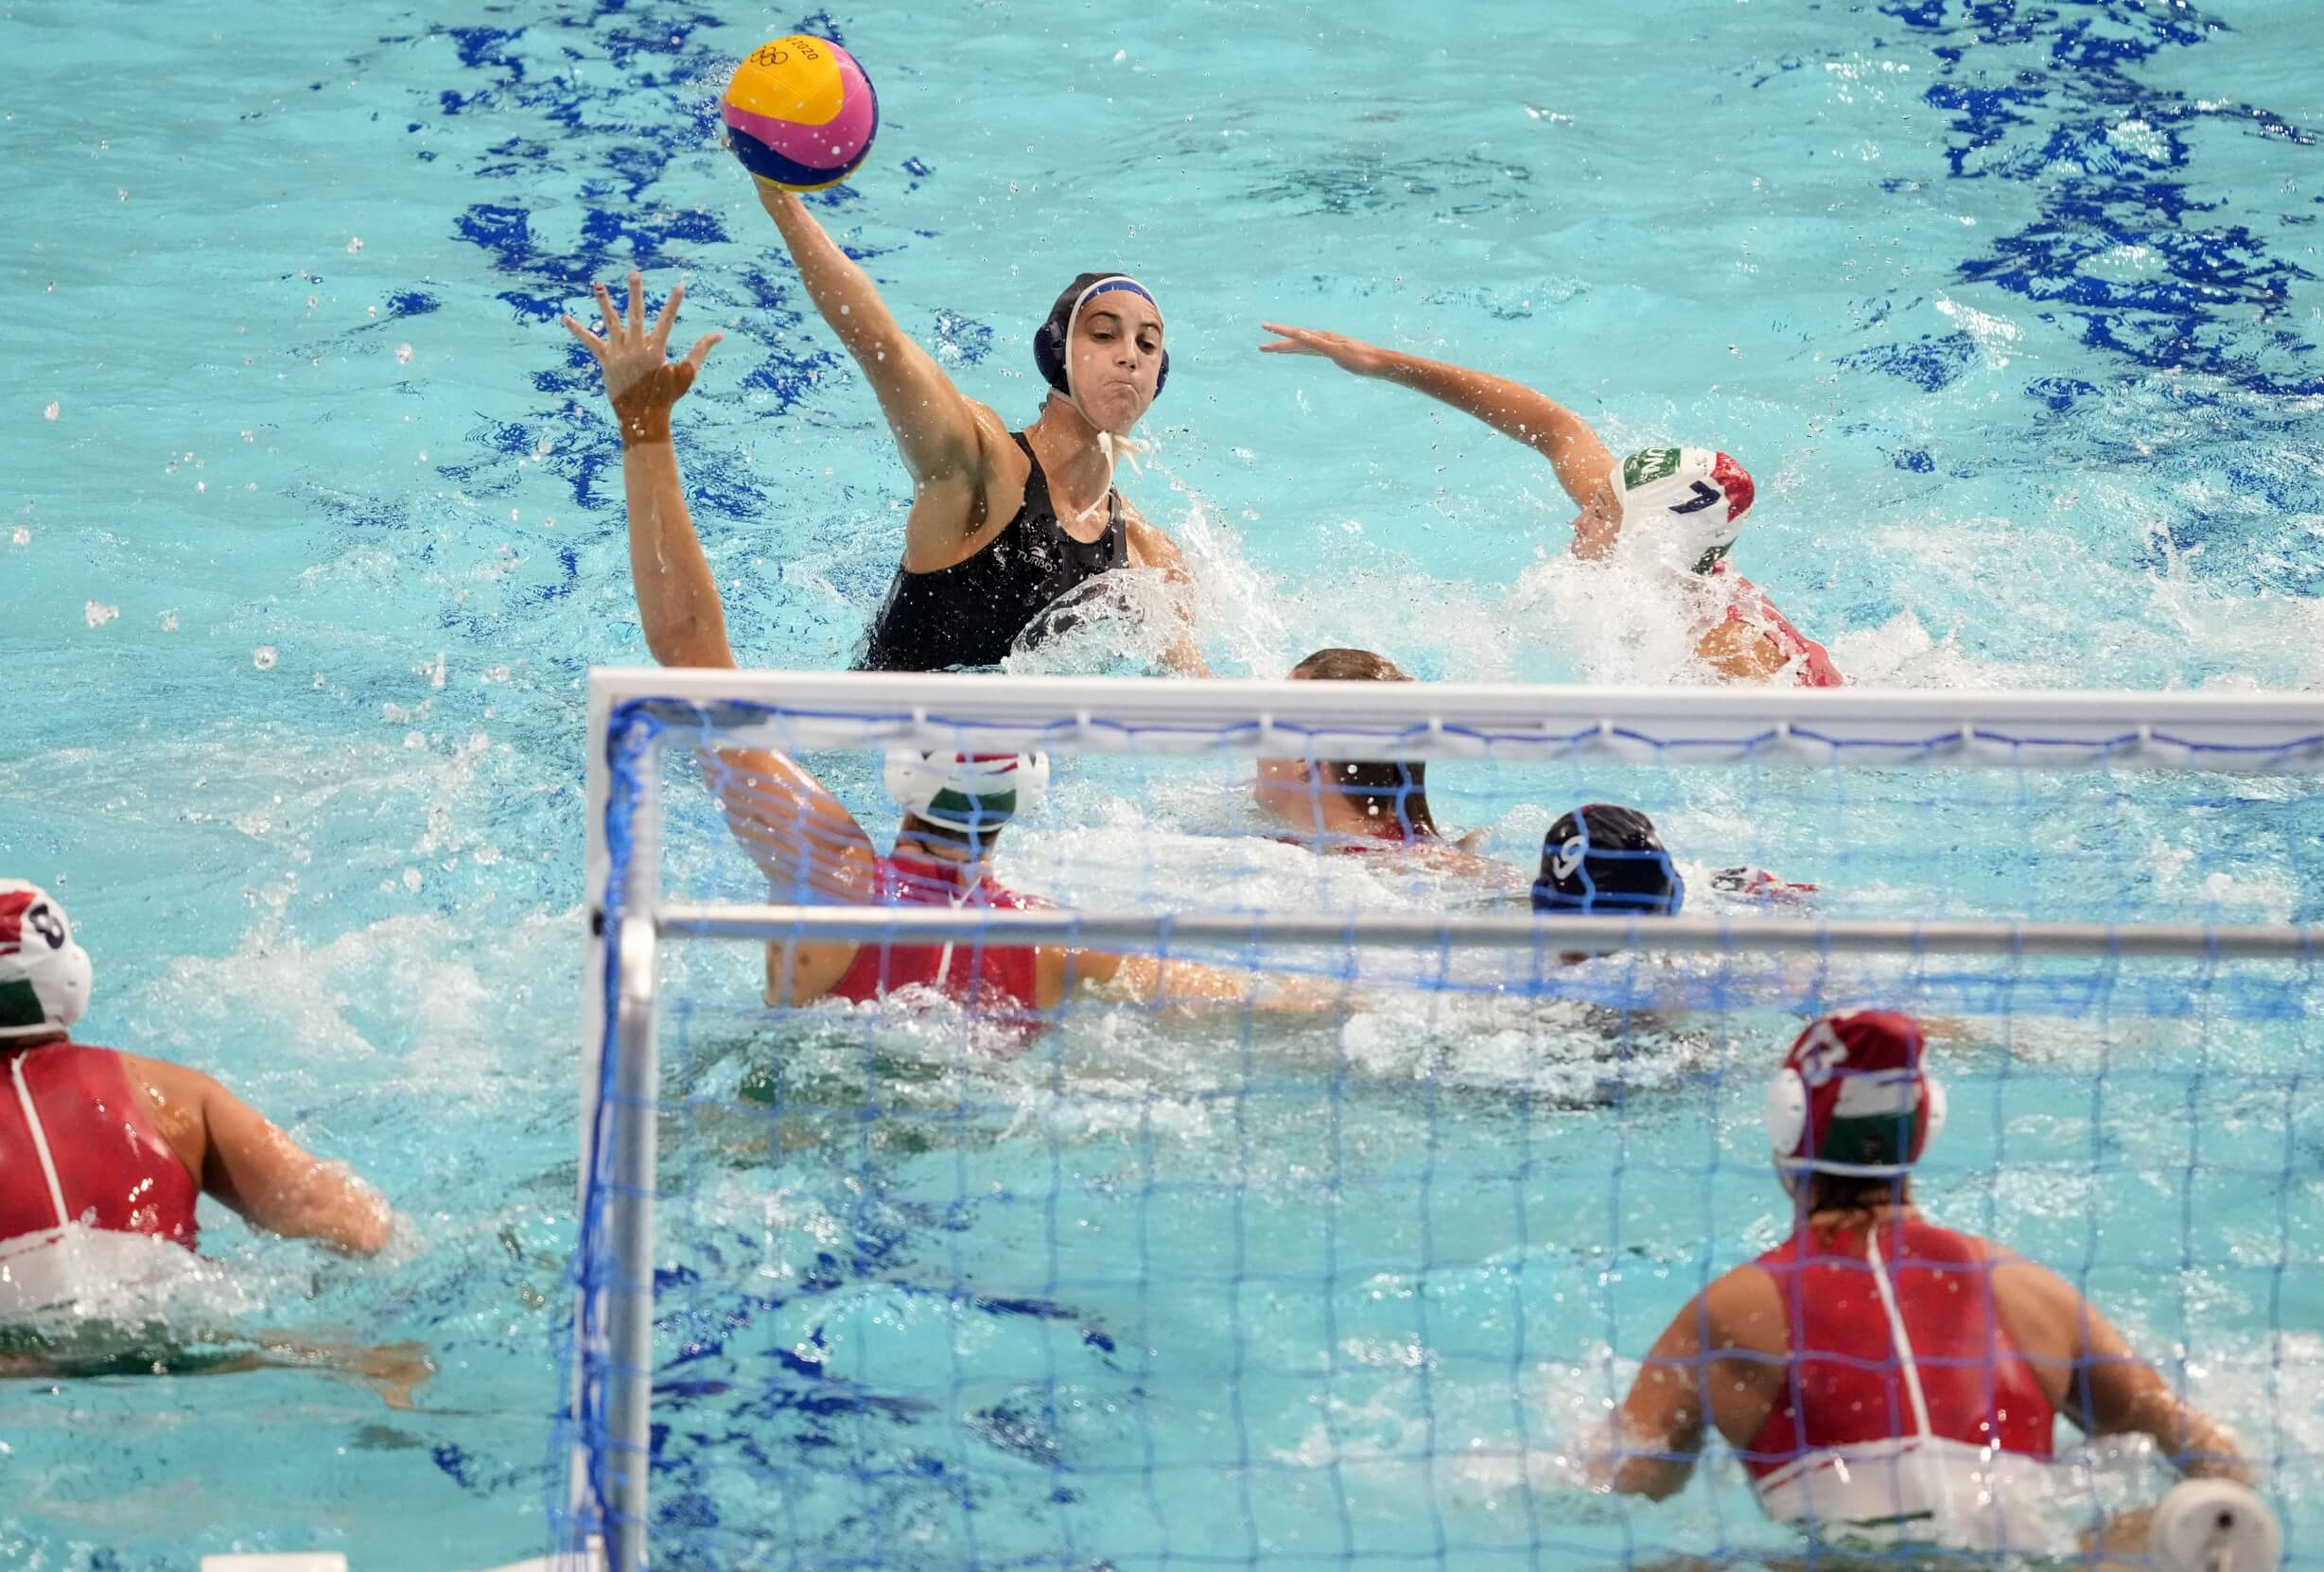 Jul 28, 2021; Tokyo, Japan; USA player Margaret Steffens (6) takes a shot against Hungary in a group B match during the Tokyo 2020 Olympic Summer Games at Tatsumi Water Polo Centre. Mandatory Credit: James Lang-USA TODAY Sports